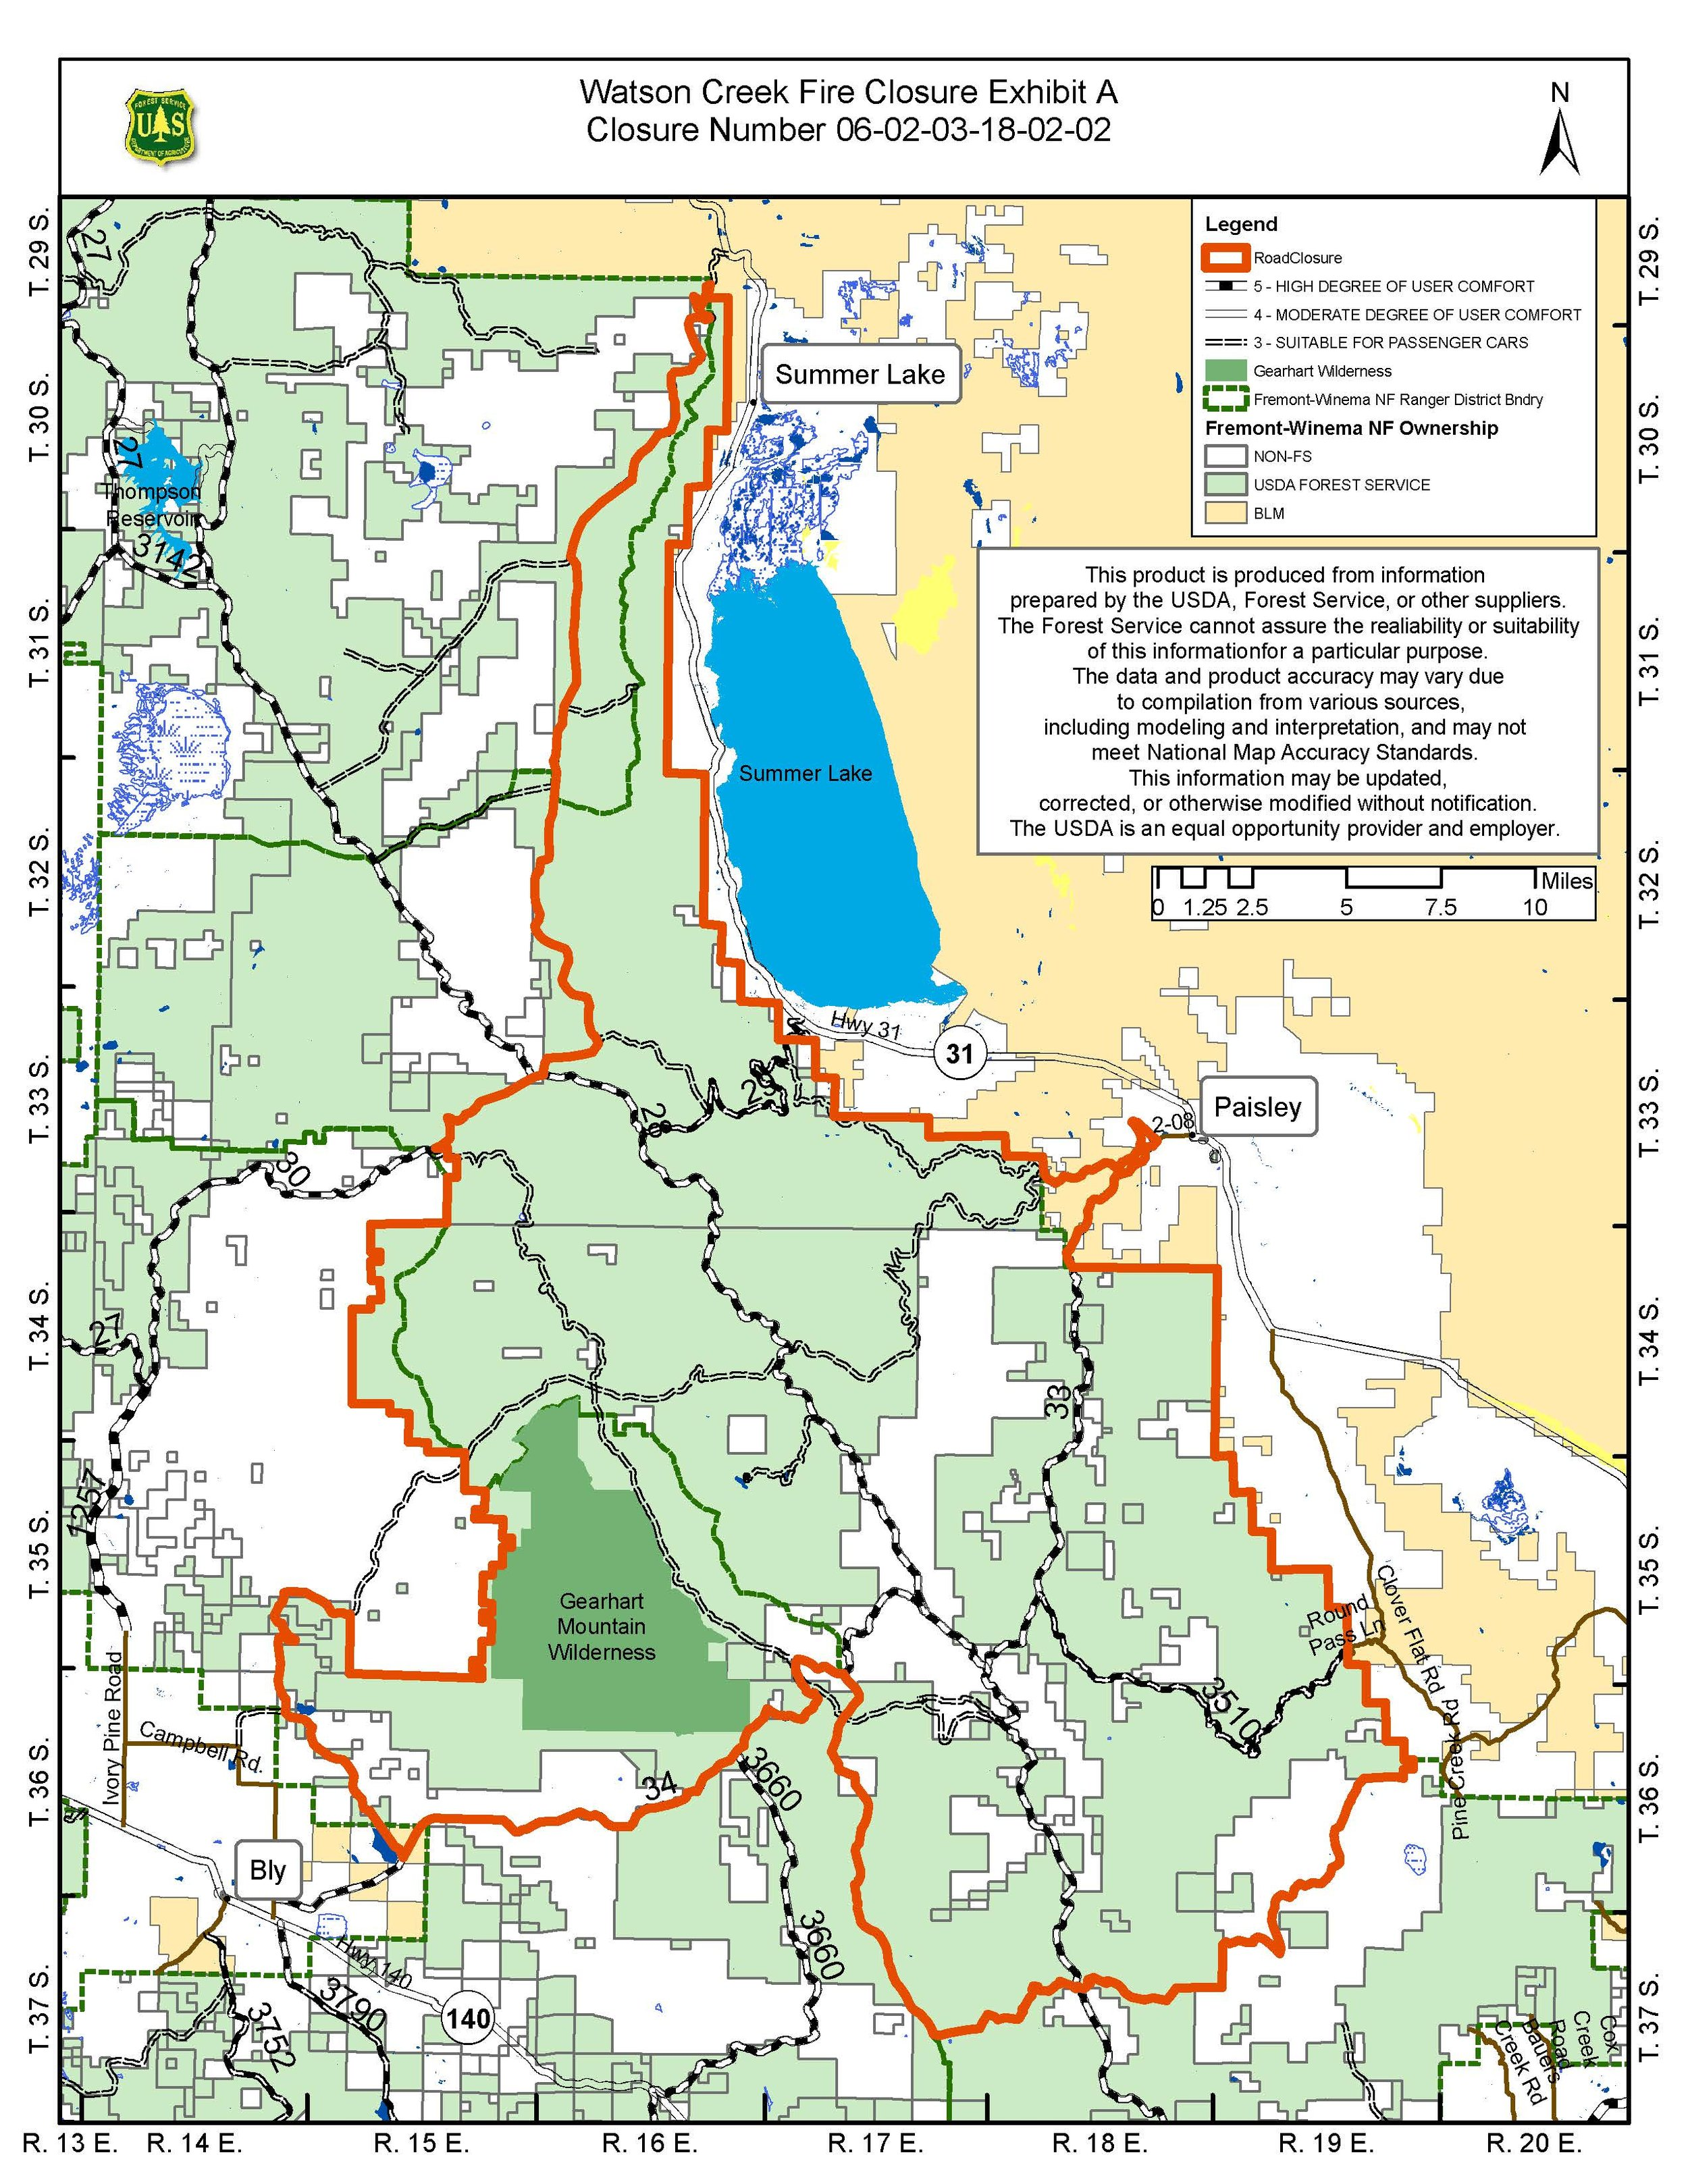 Emergency Fire Closures for the Fremont-Winema National Forest. Due to the Watson Creek Fire near Paisley, Oregon. CLICK FOR LARGER.